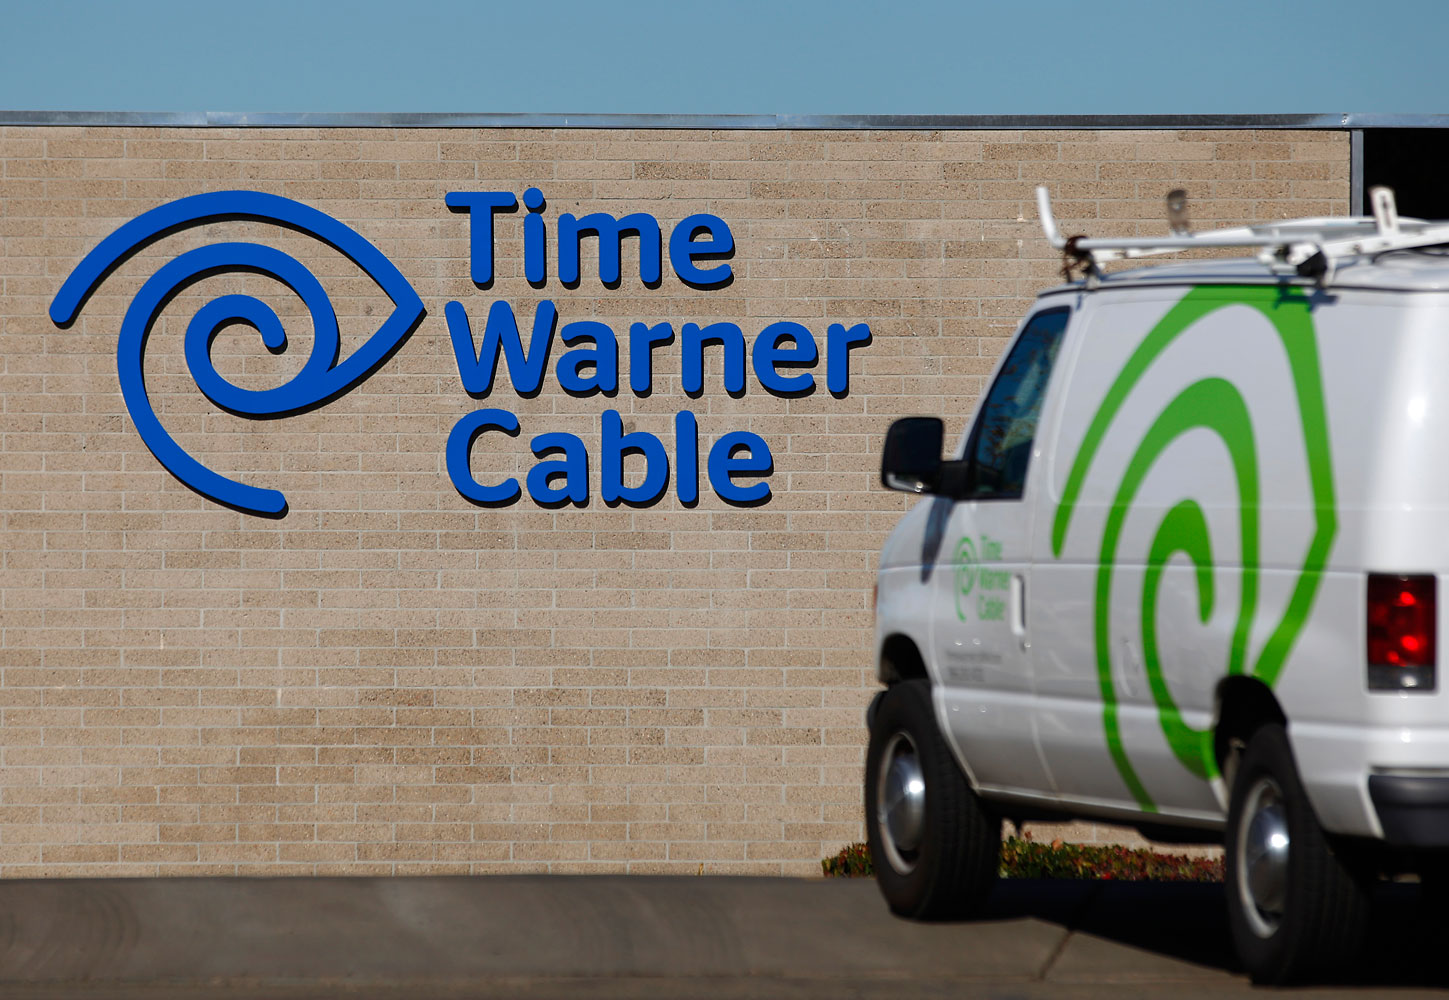 A cable truck returns to a Time Warner Cable office in California, Dec. 11, 2013.